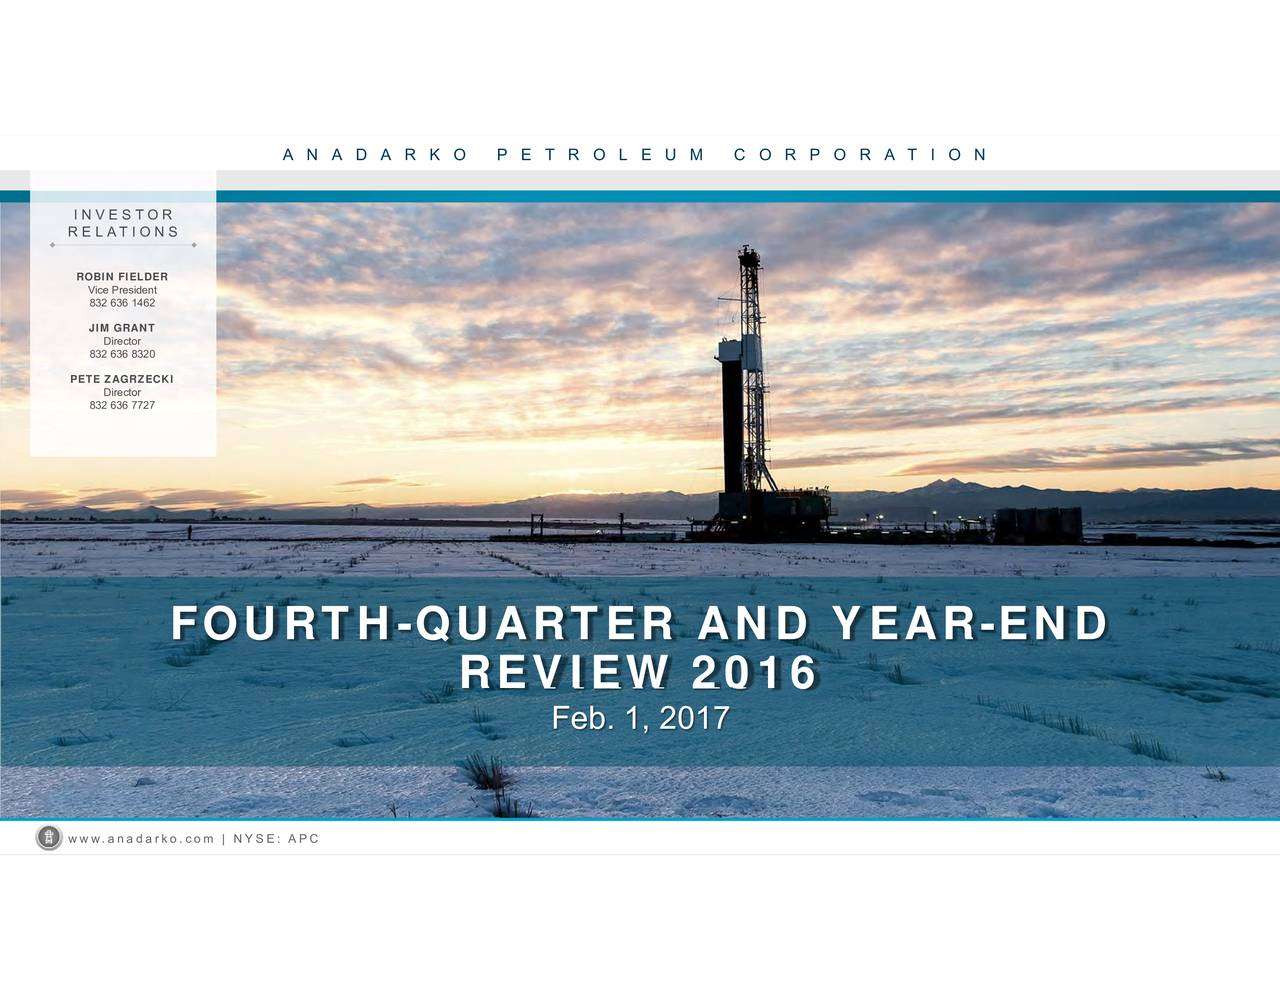 REVIEW 2016 ANADARKO PETROLEUM CORPORATION FOURTH-QUARTER AND YEAR-END DirecDirector Vice President22 636 8382302 636 7727 IRELATIONS FIELPETE ZAGRZECKI www.anadarko.com | NYSE: APC